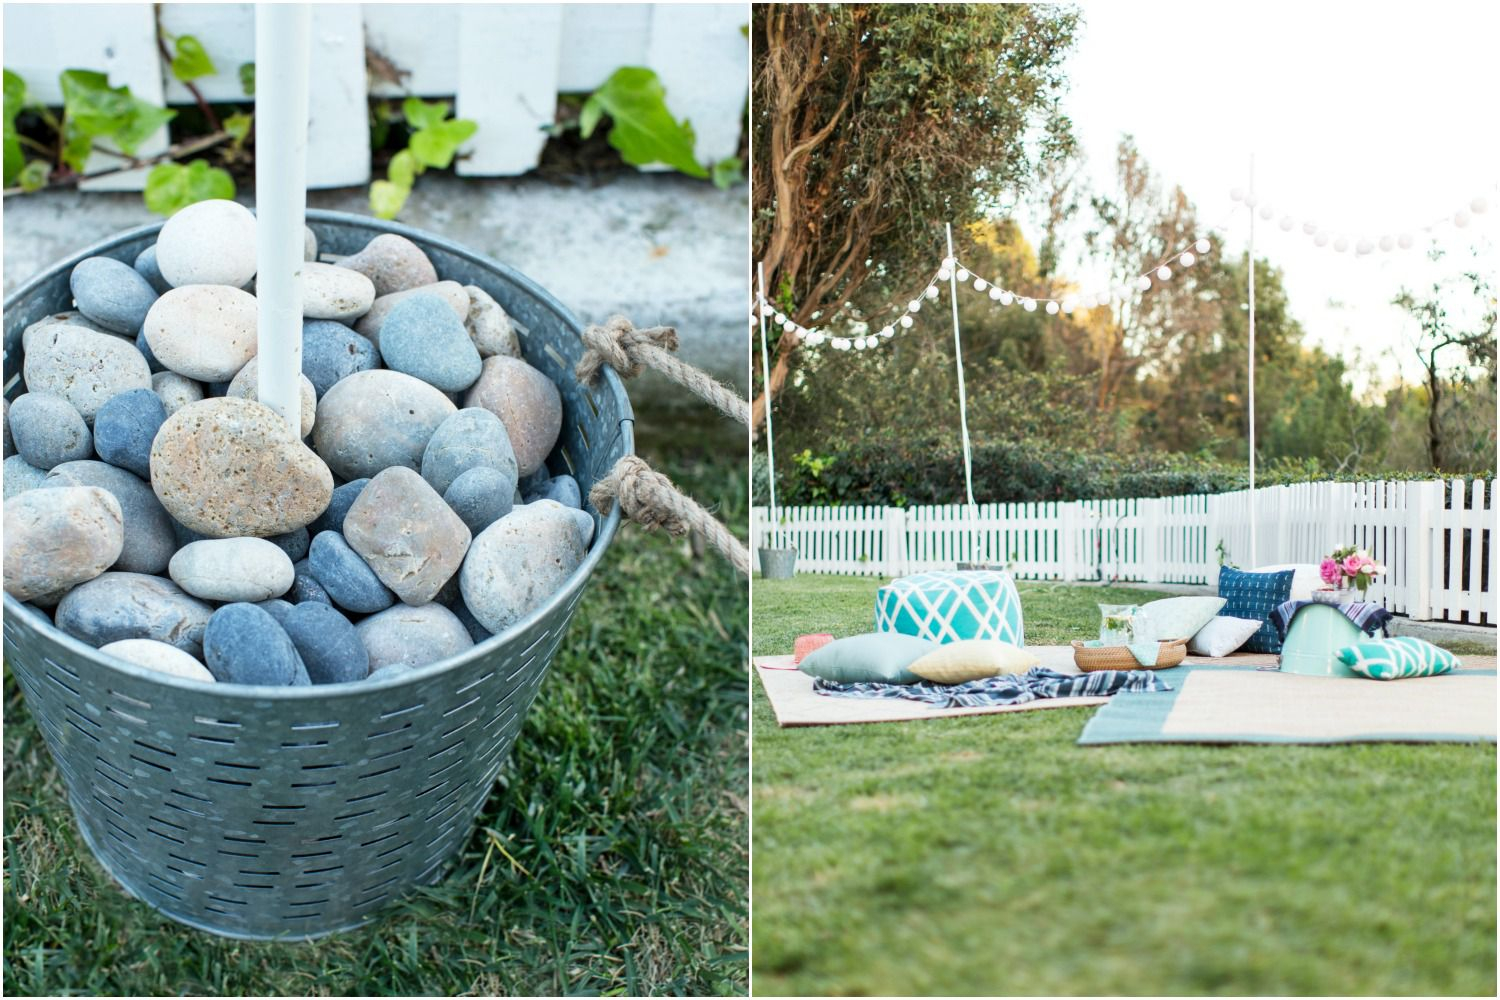 60 Summer Party Ideas And Themes Outdoor Entertaining Tips with Backyard Decorations For Party